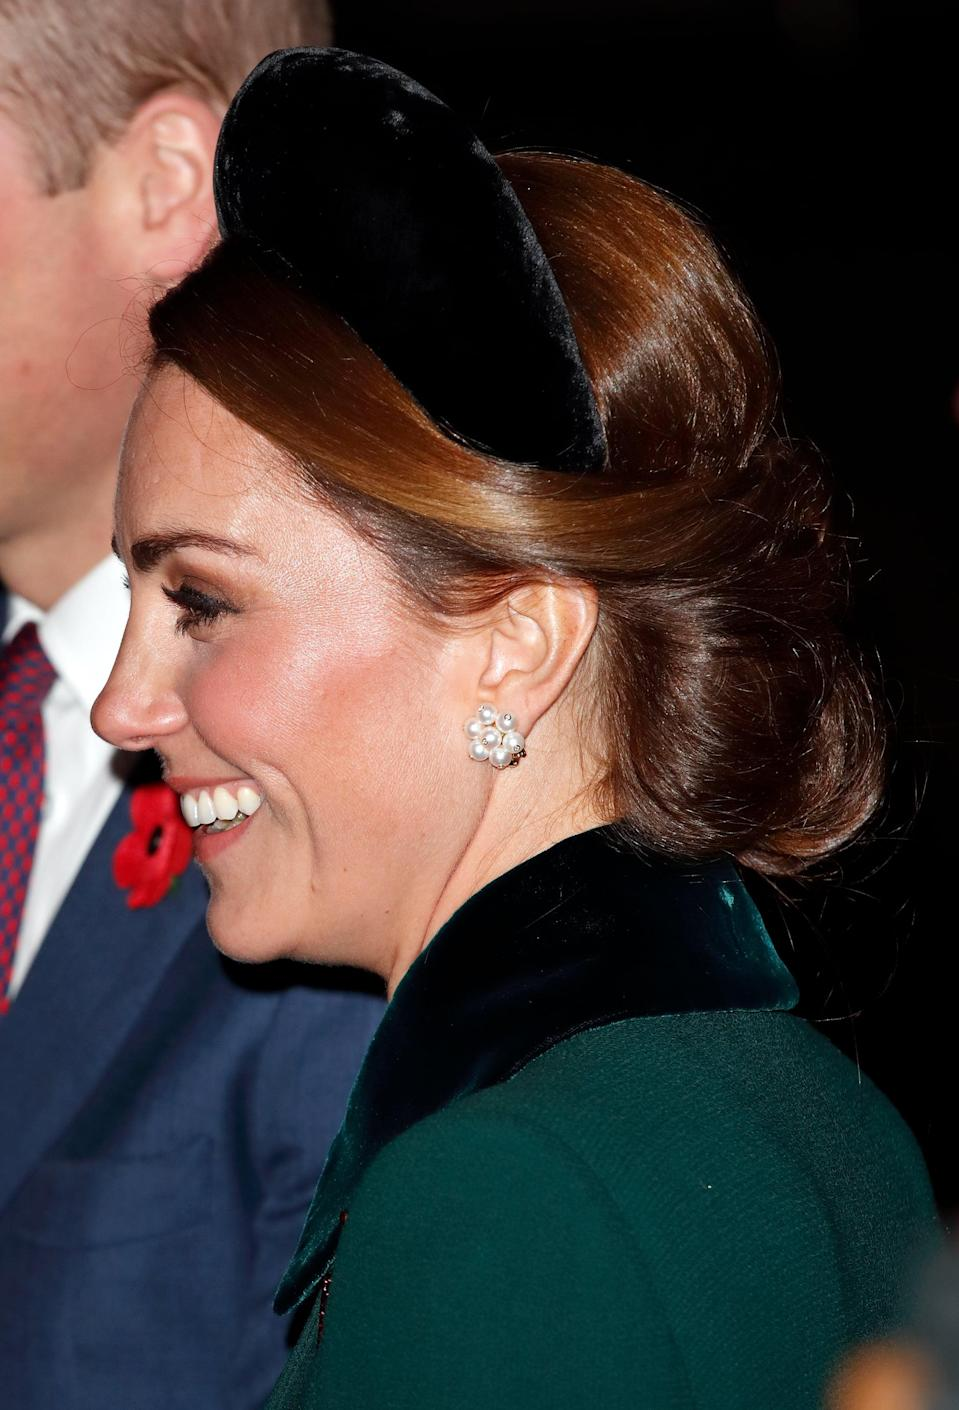 <p>At a celebration marking the centenary of Amristice at Westminster Abbey in 2018, Middleton switched out a jewel-encrusted tiara for a chunky velvet Alice band - marking her as one of the key initiators of the headband trend that would hit the fashion industry in 2019. How she styled it - with one of her low, looped-up chignons with the face-framing pieces crisscrossed across the back of her head, something she does quite often - isn't just an aesthetic choice. The hairstyle actually helps keep the accessory in place, holding the ends of the band close to her head without the need of pins. </p>